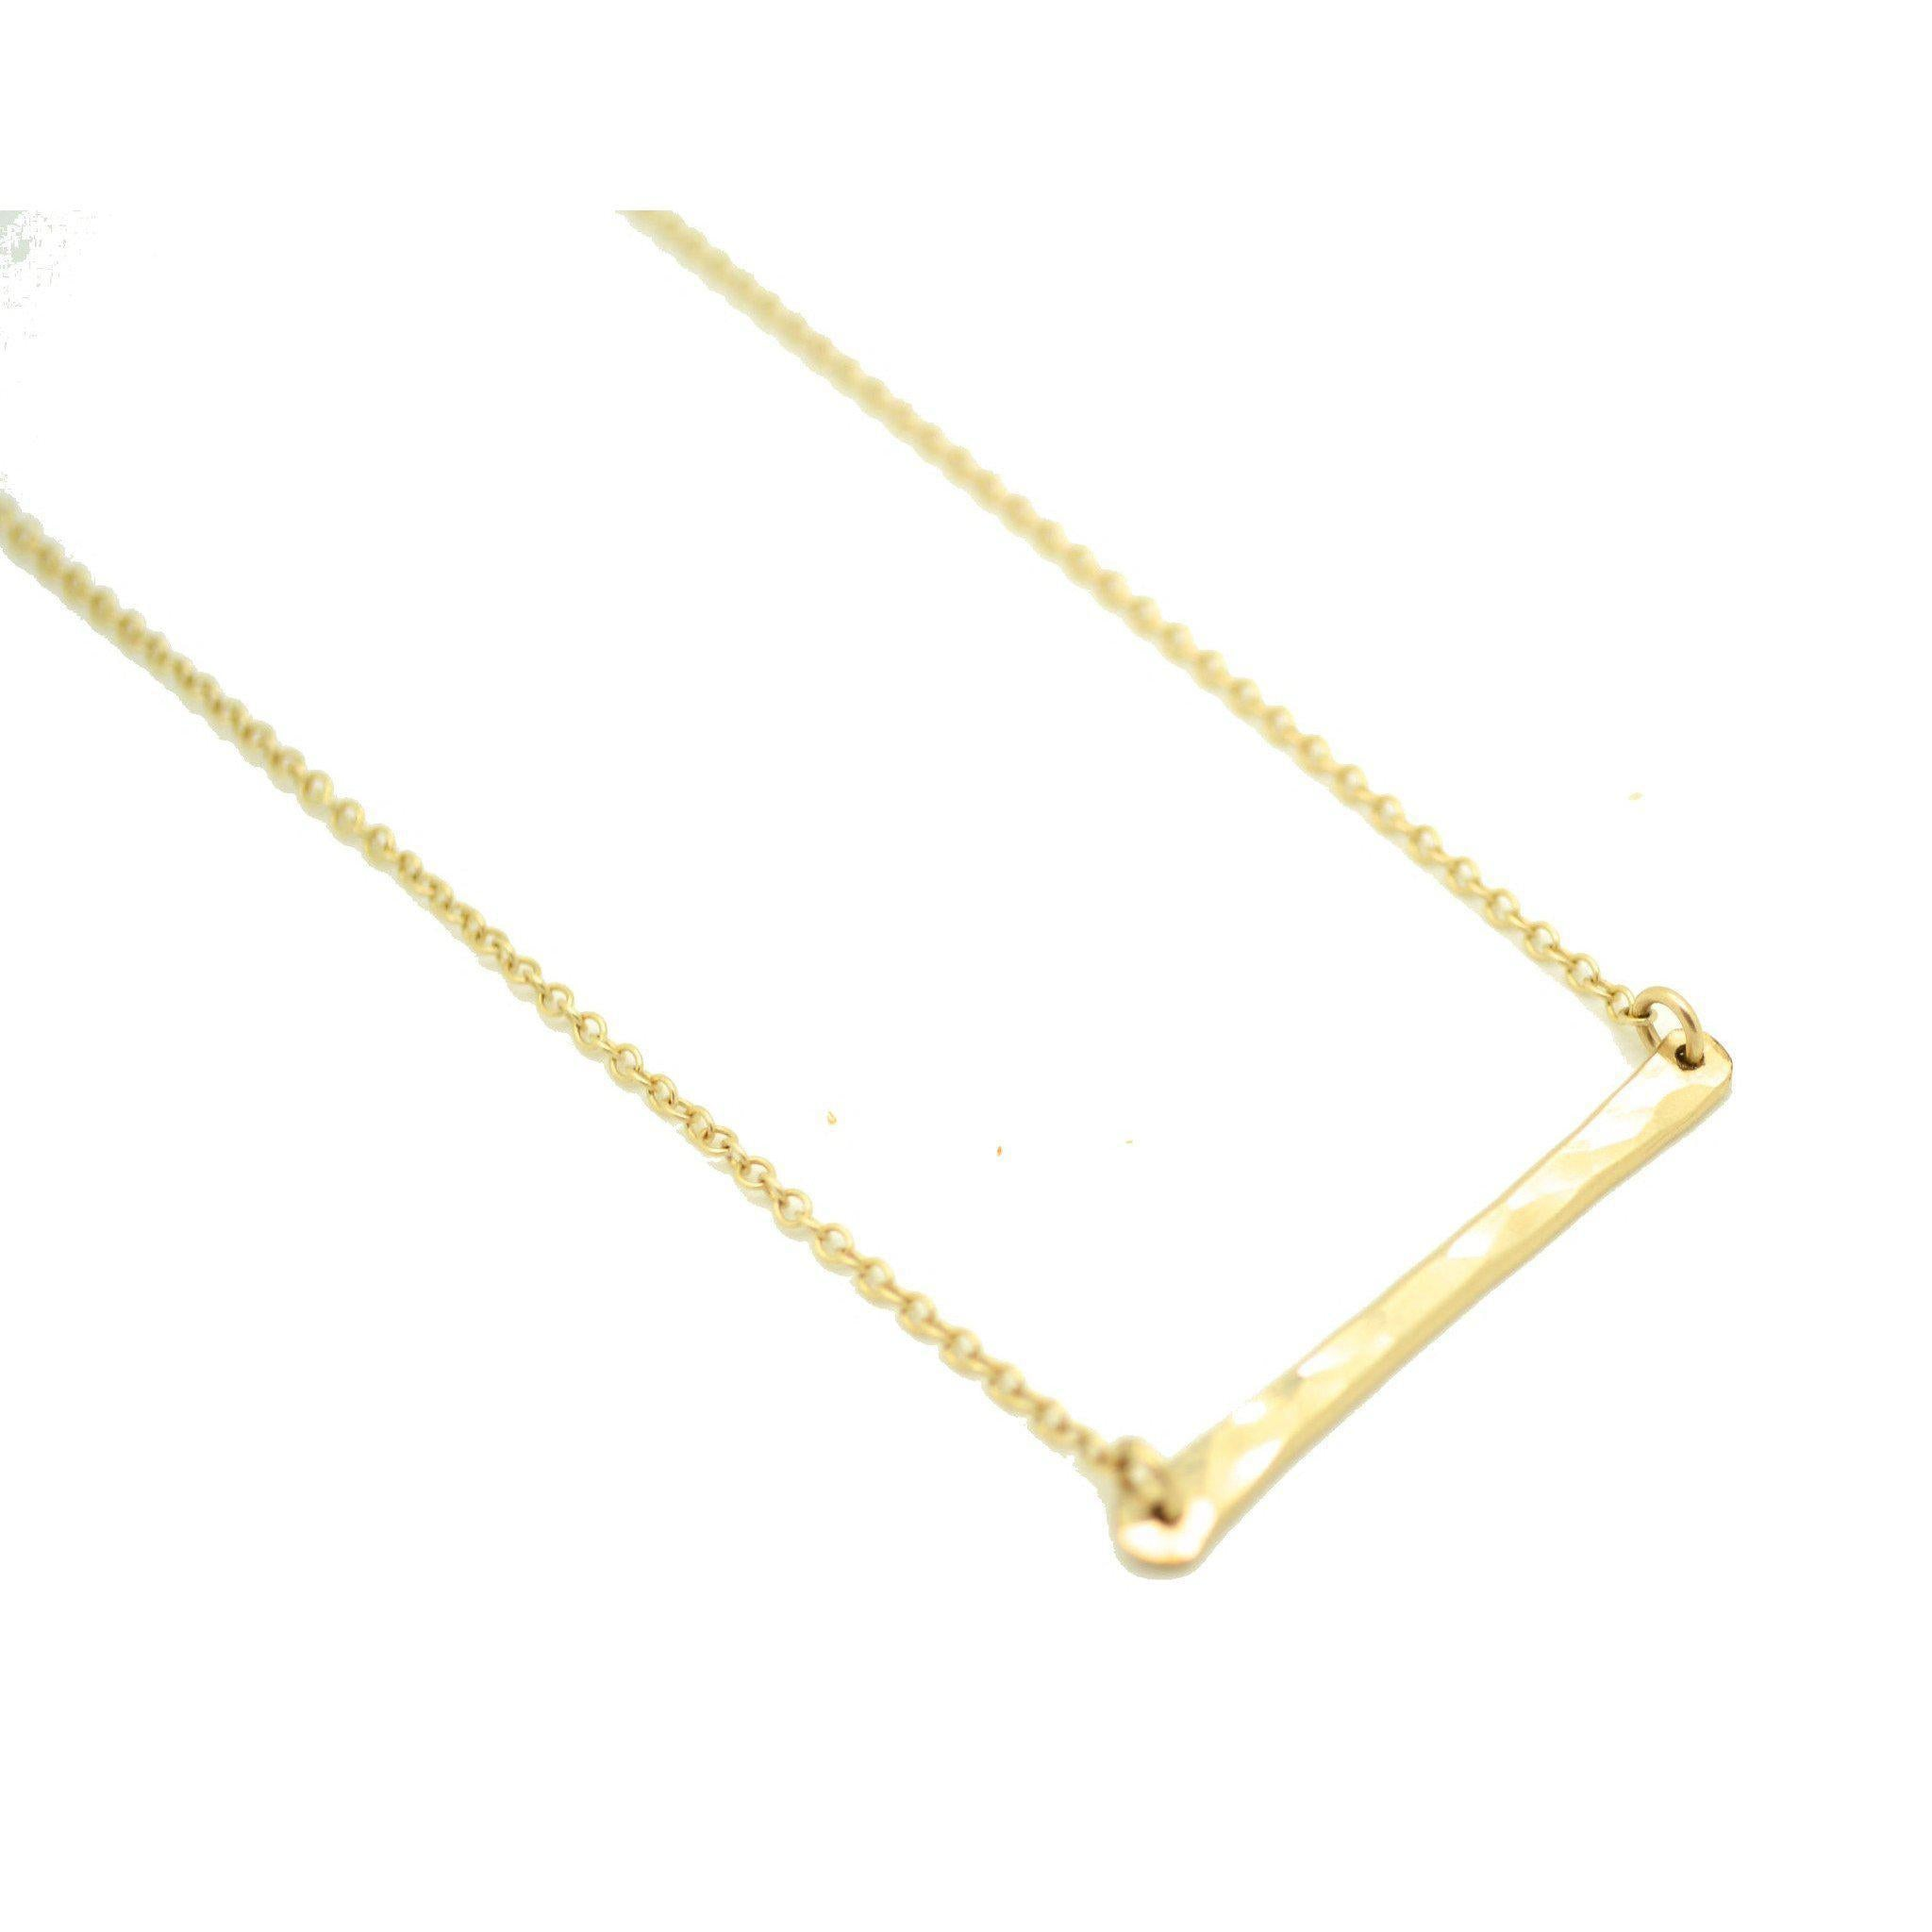 The Horizontal Bar Necklace Wholesale